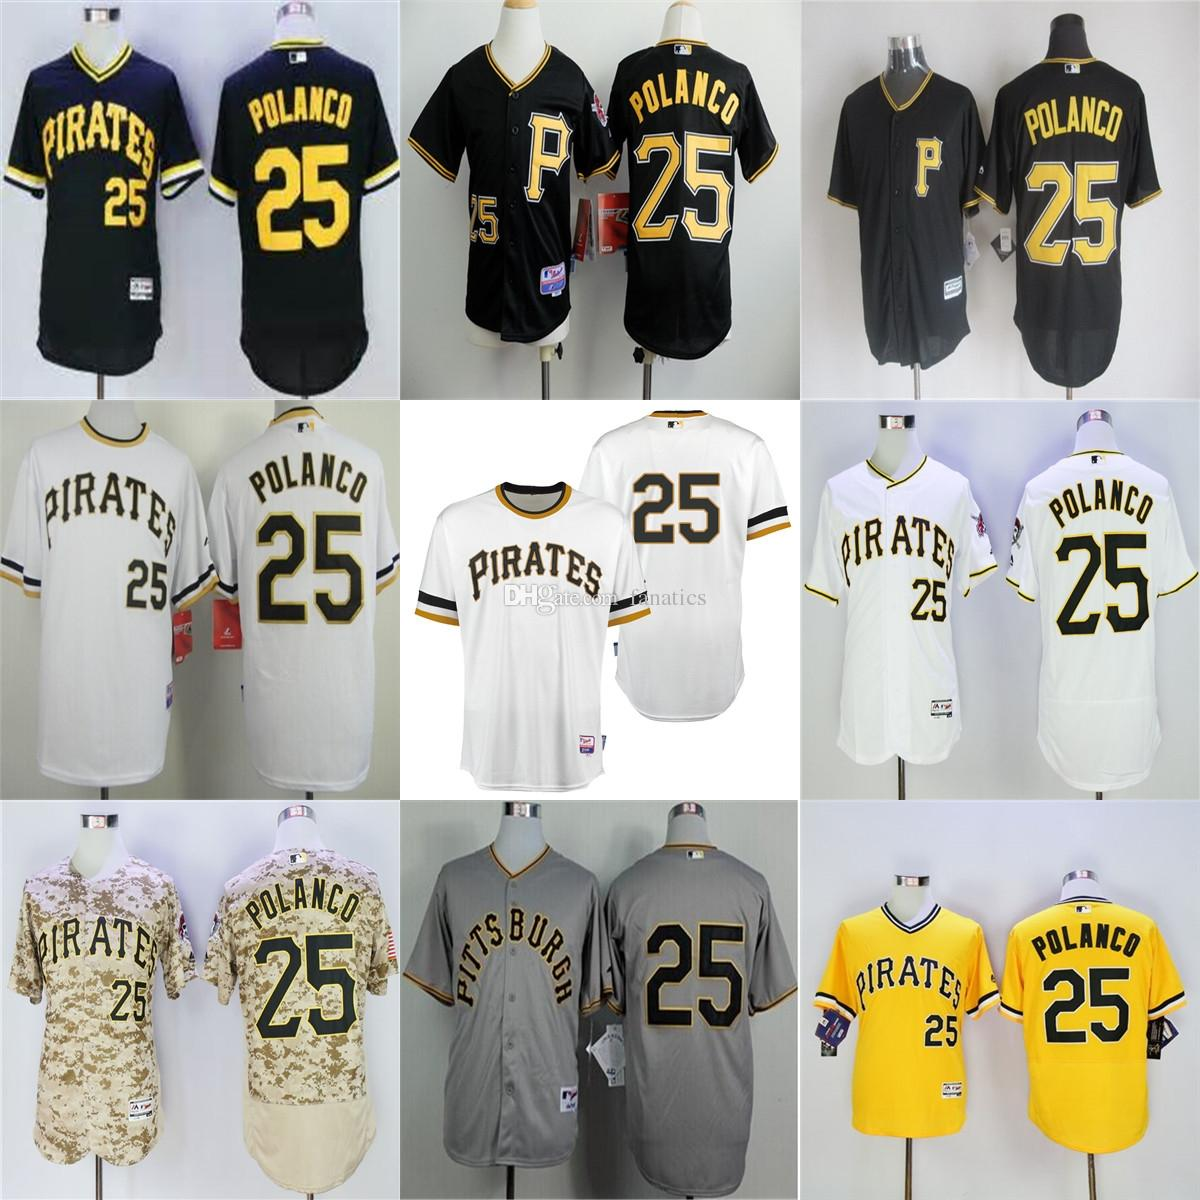 the best attitude ad62a 3bd2d australia mlb jerseys pittsburgh pirates 25 gregory polanco ...